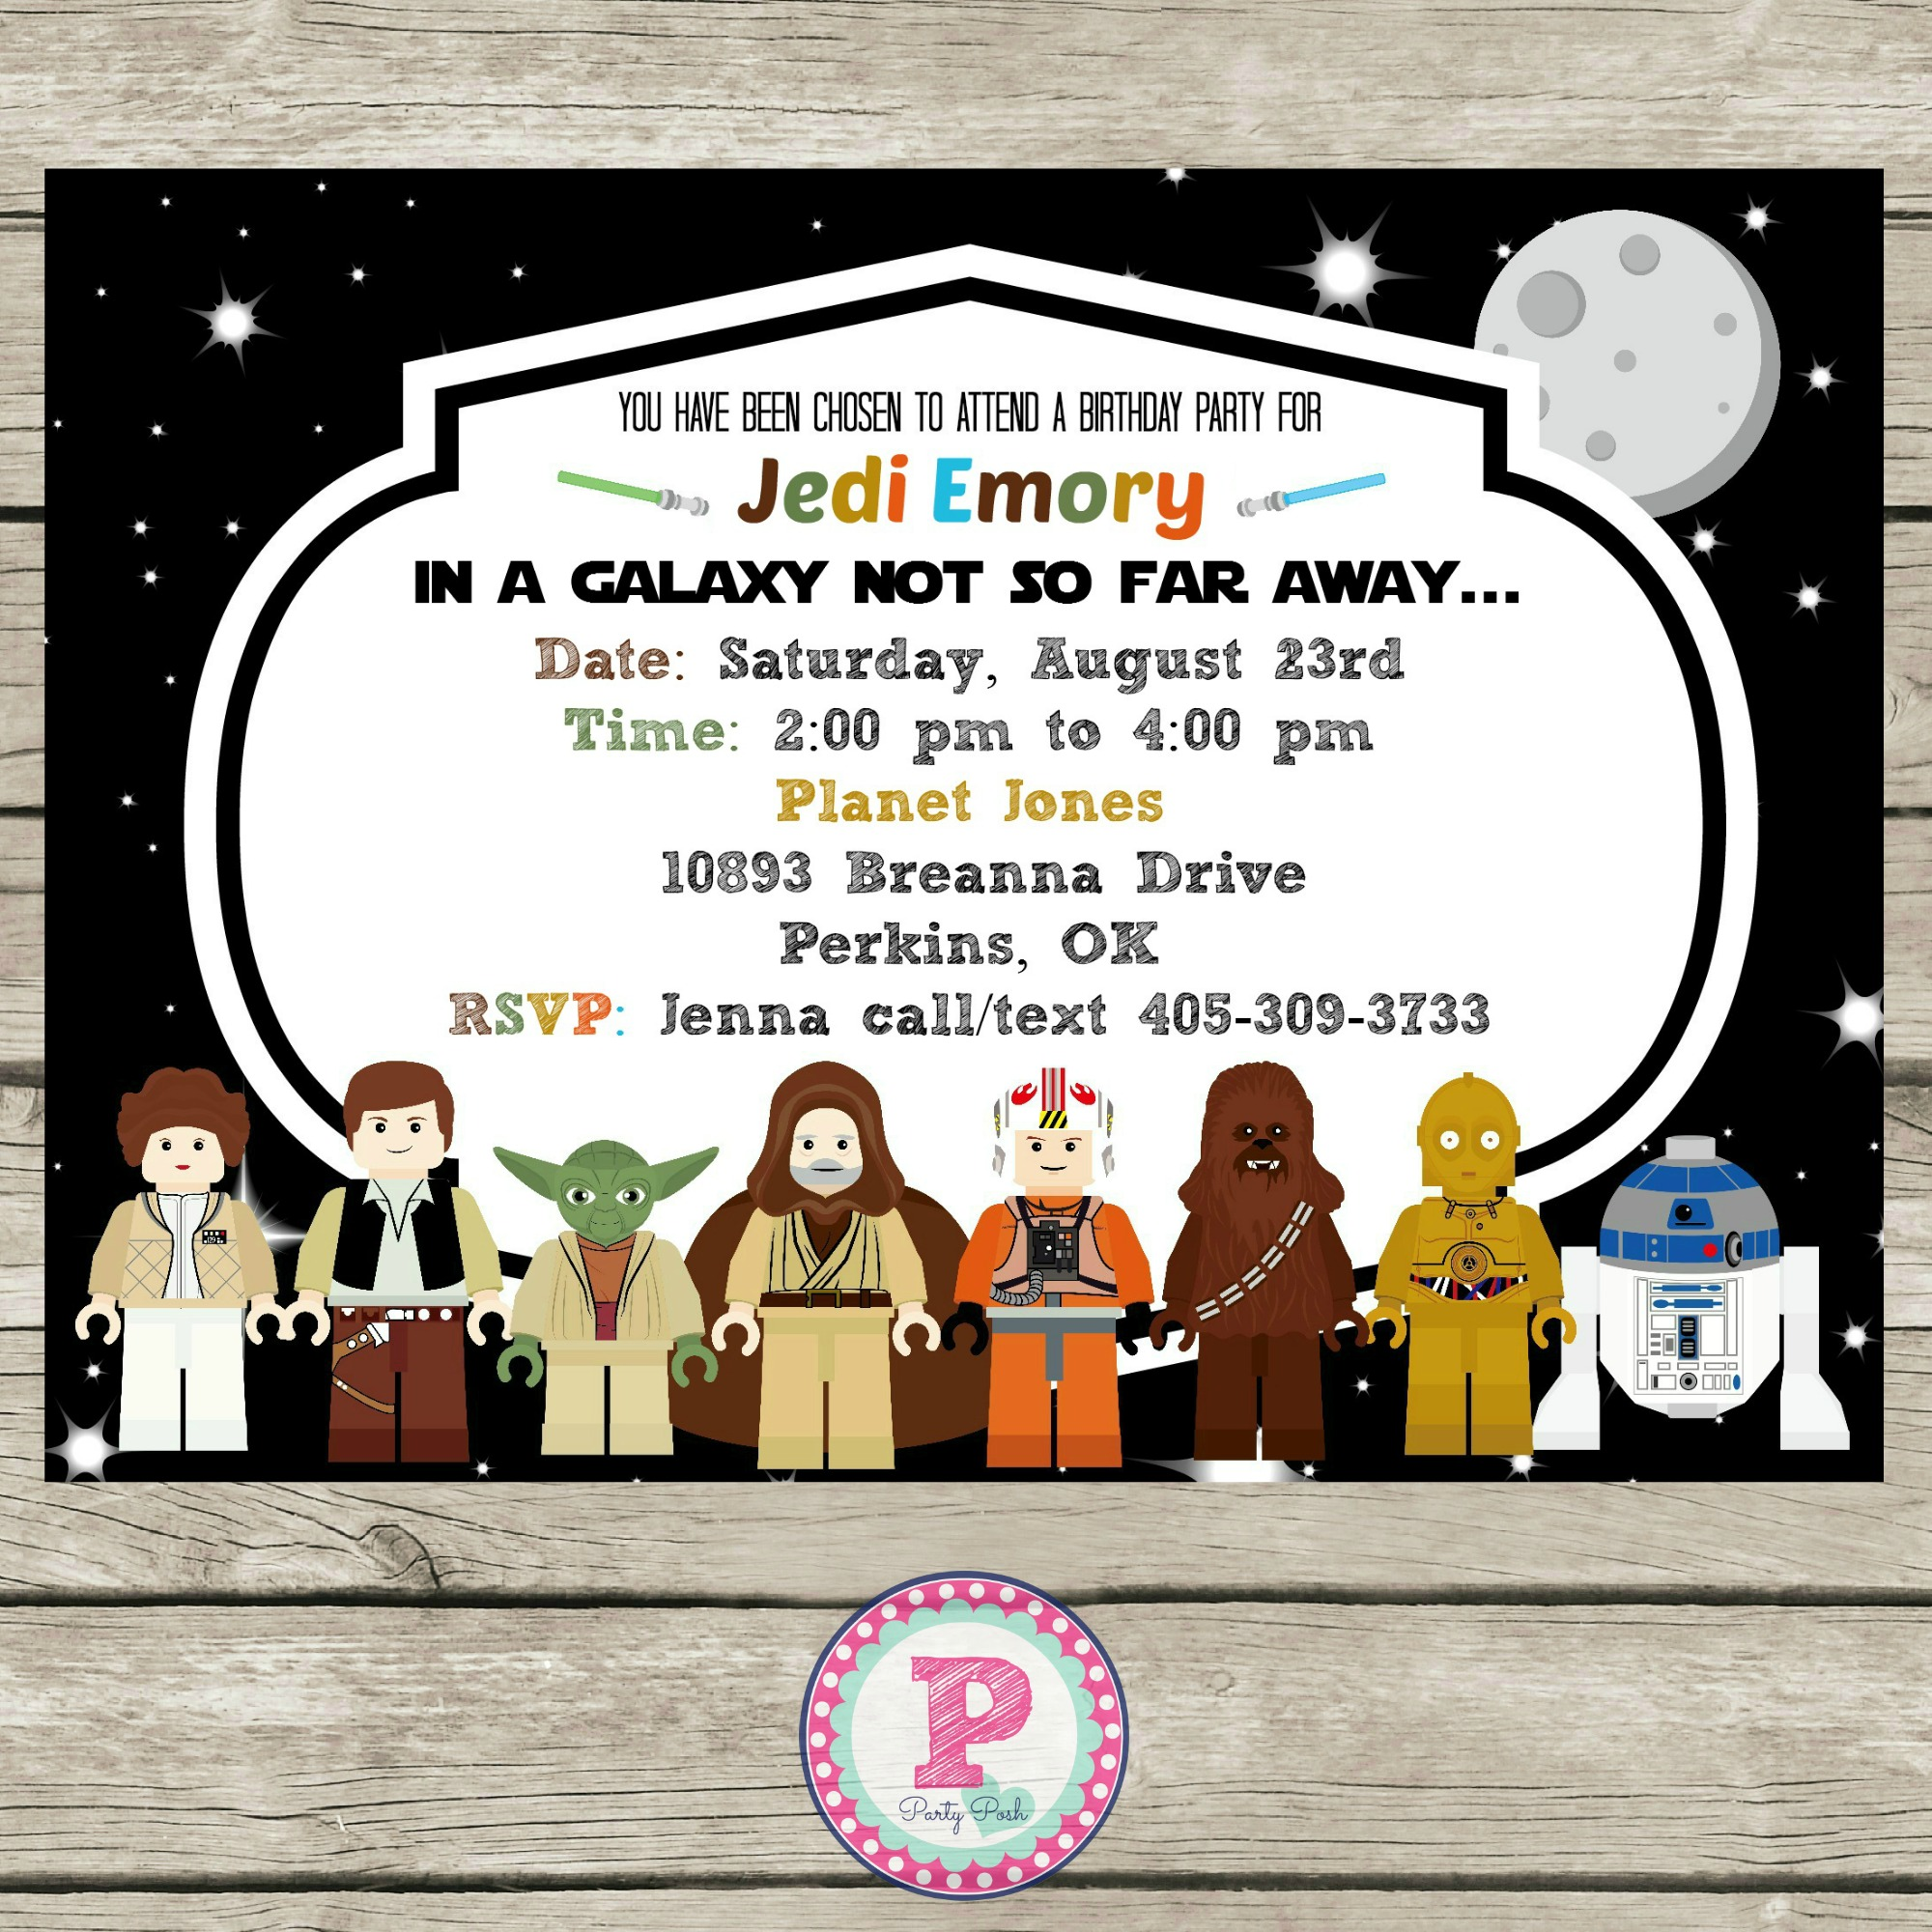 Personalized Star Wars Invitations was amazing invitation example